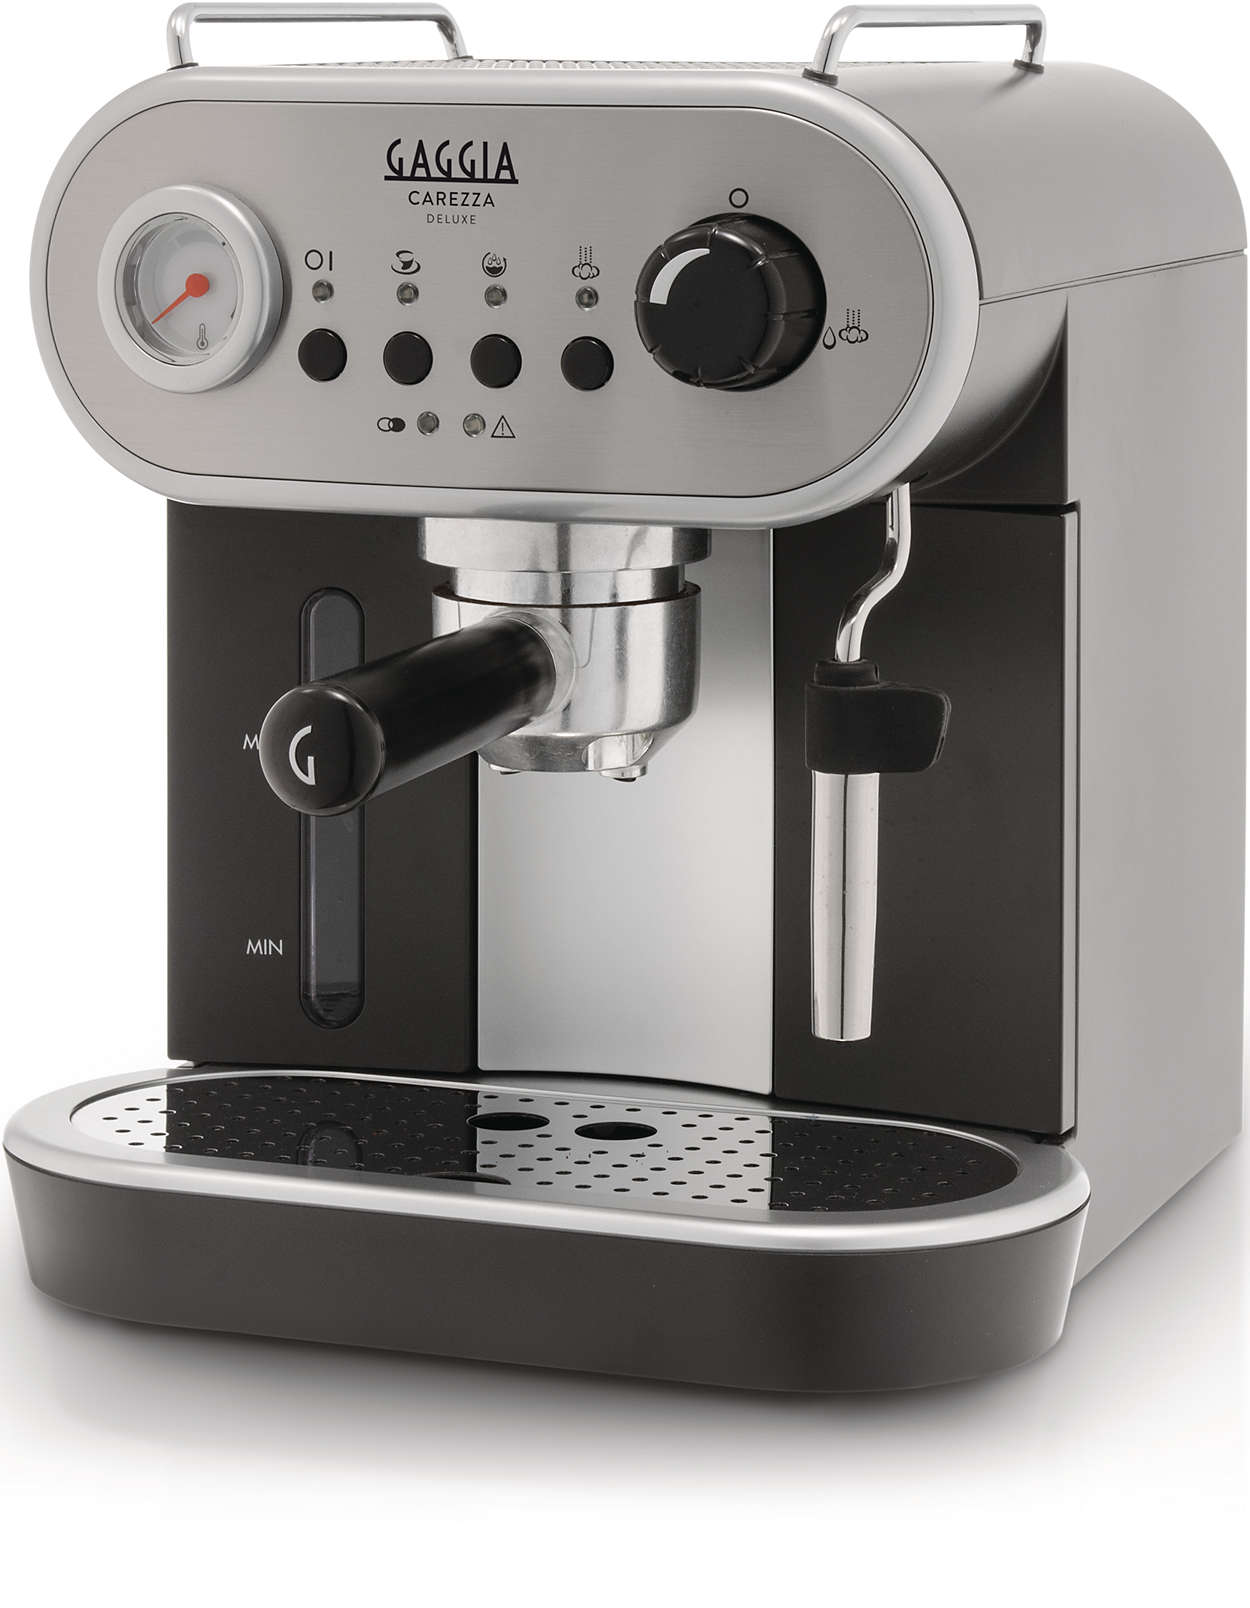 Espressor manual Gaggia Carezza Deluxe, 1900 W, 1.4 L, 15 bar, cadou decalcifiant Gaggia